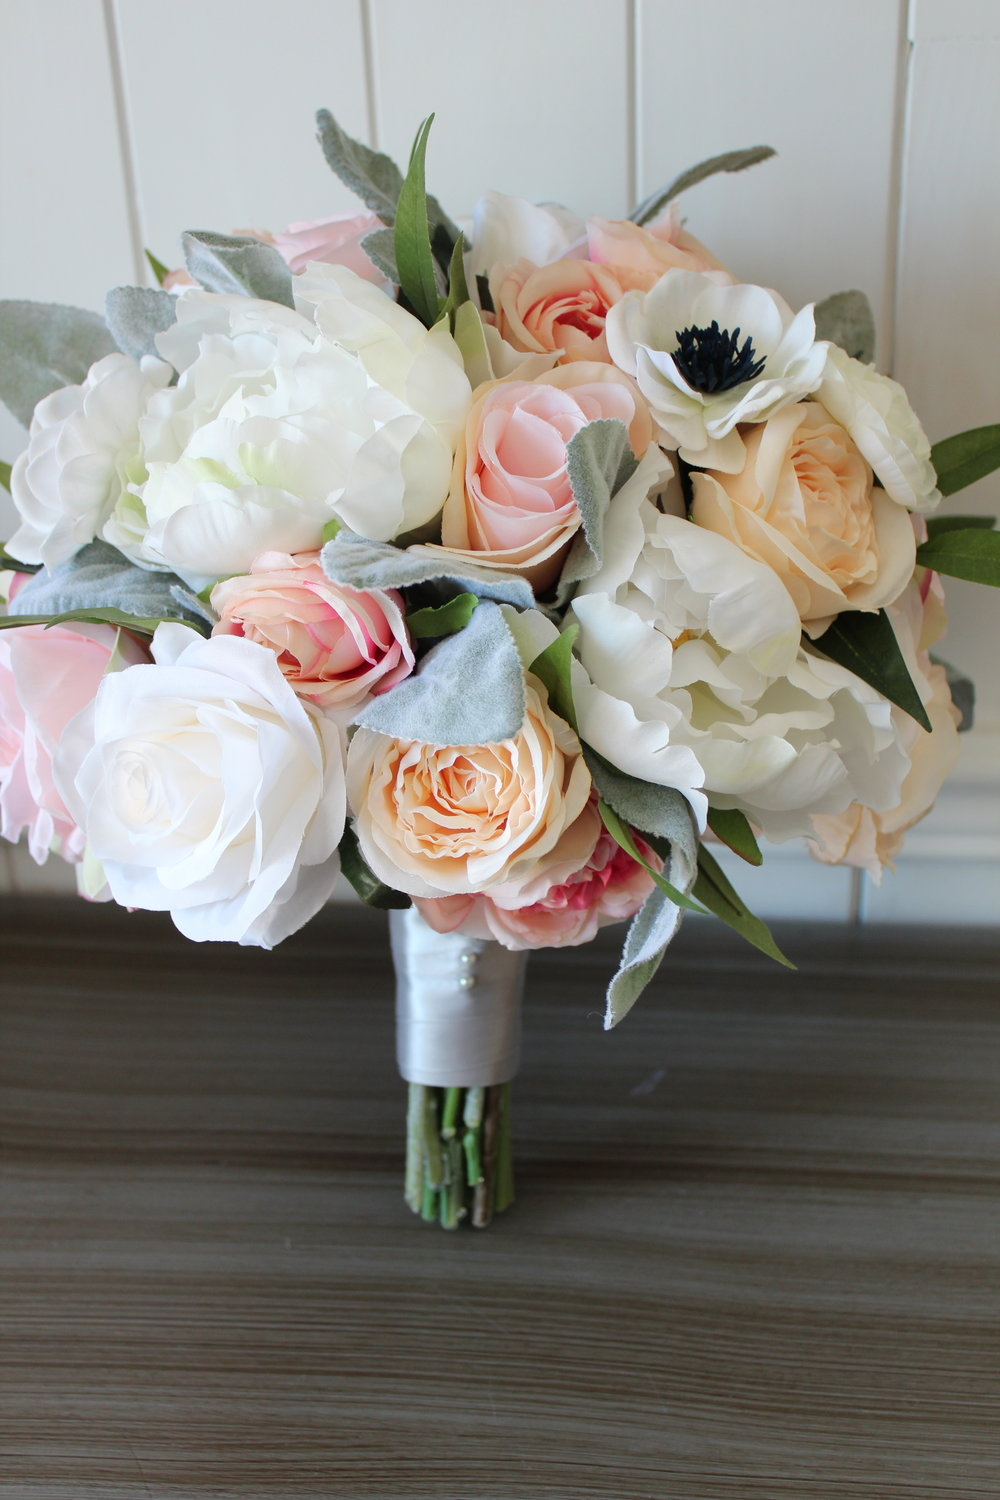 fresh-wedding-flowers-silk-bridal-bouquet-recreation.jpg